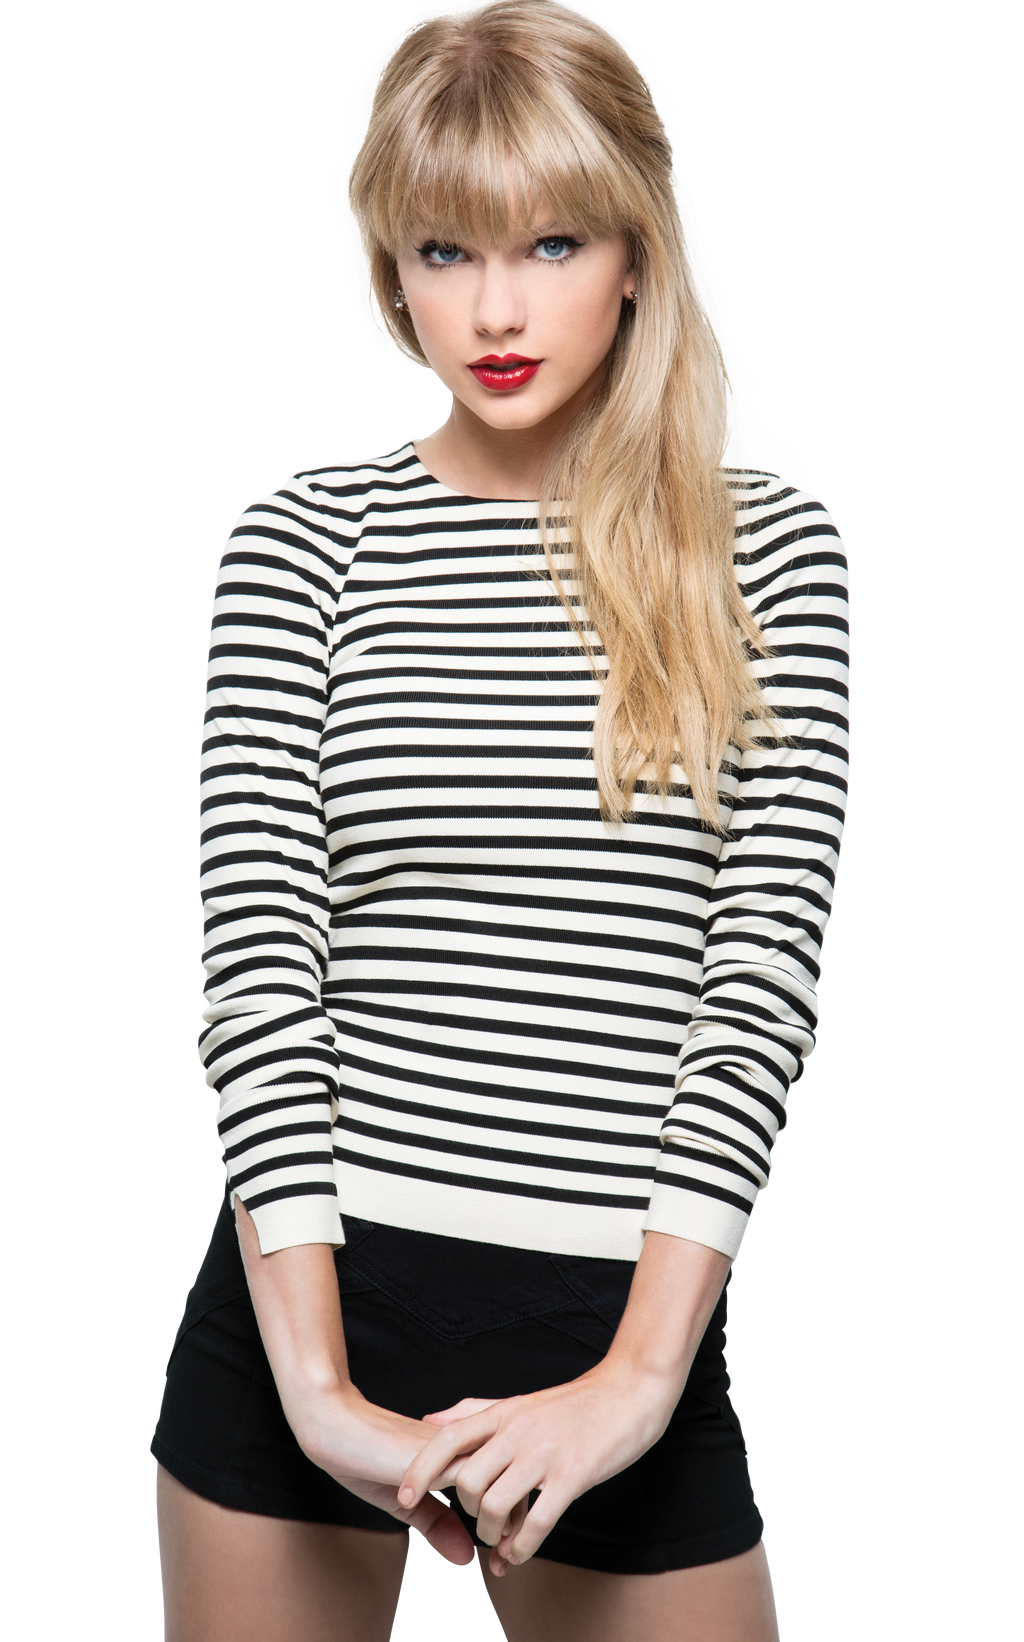 TaylorSwift PNG by flawlessduck on DeviantArt